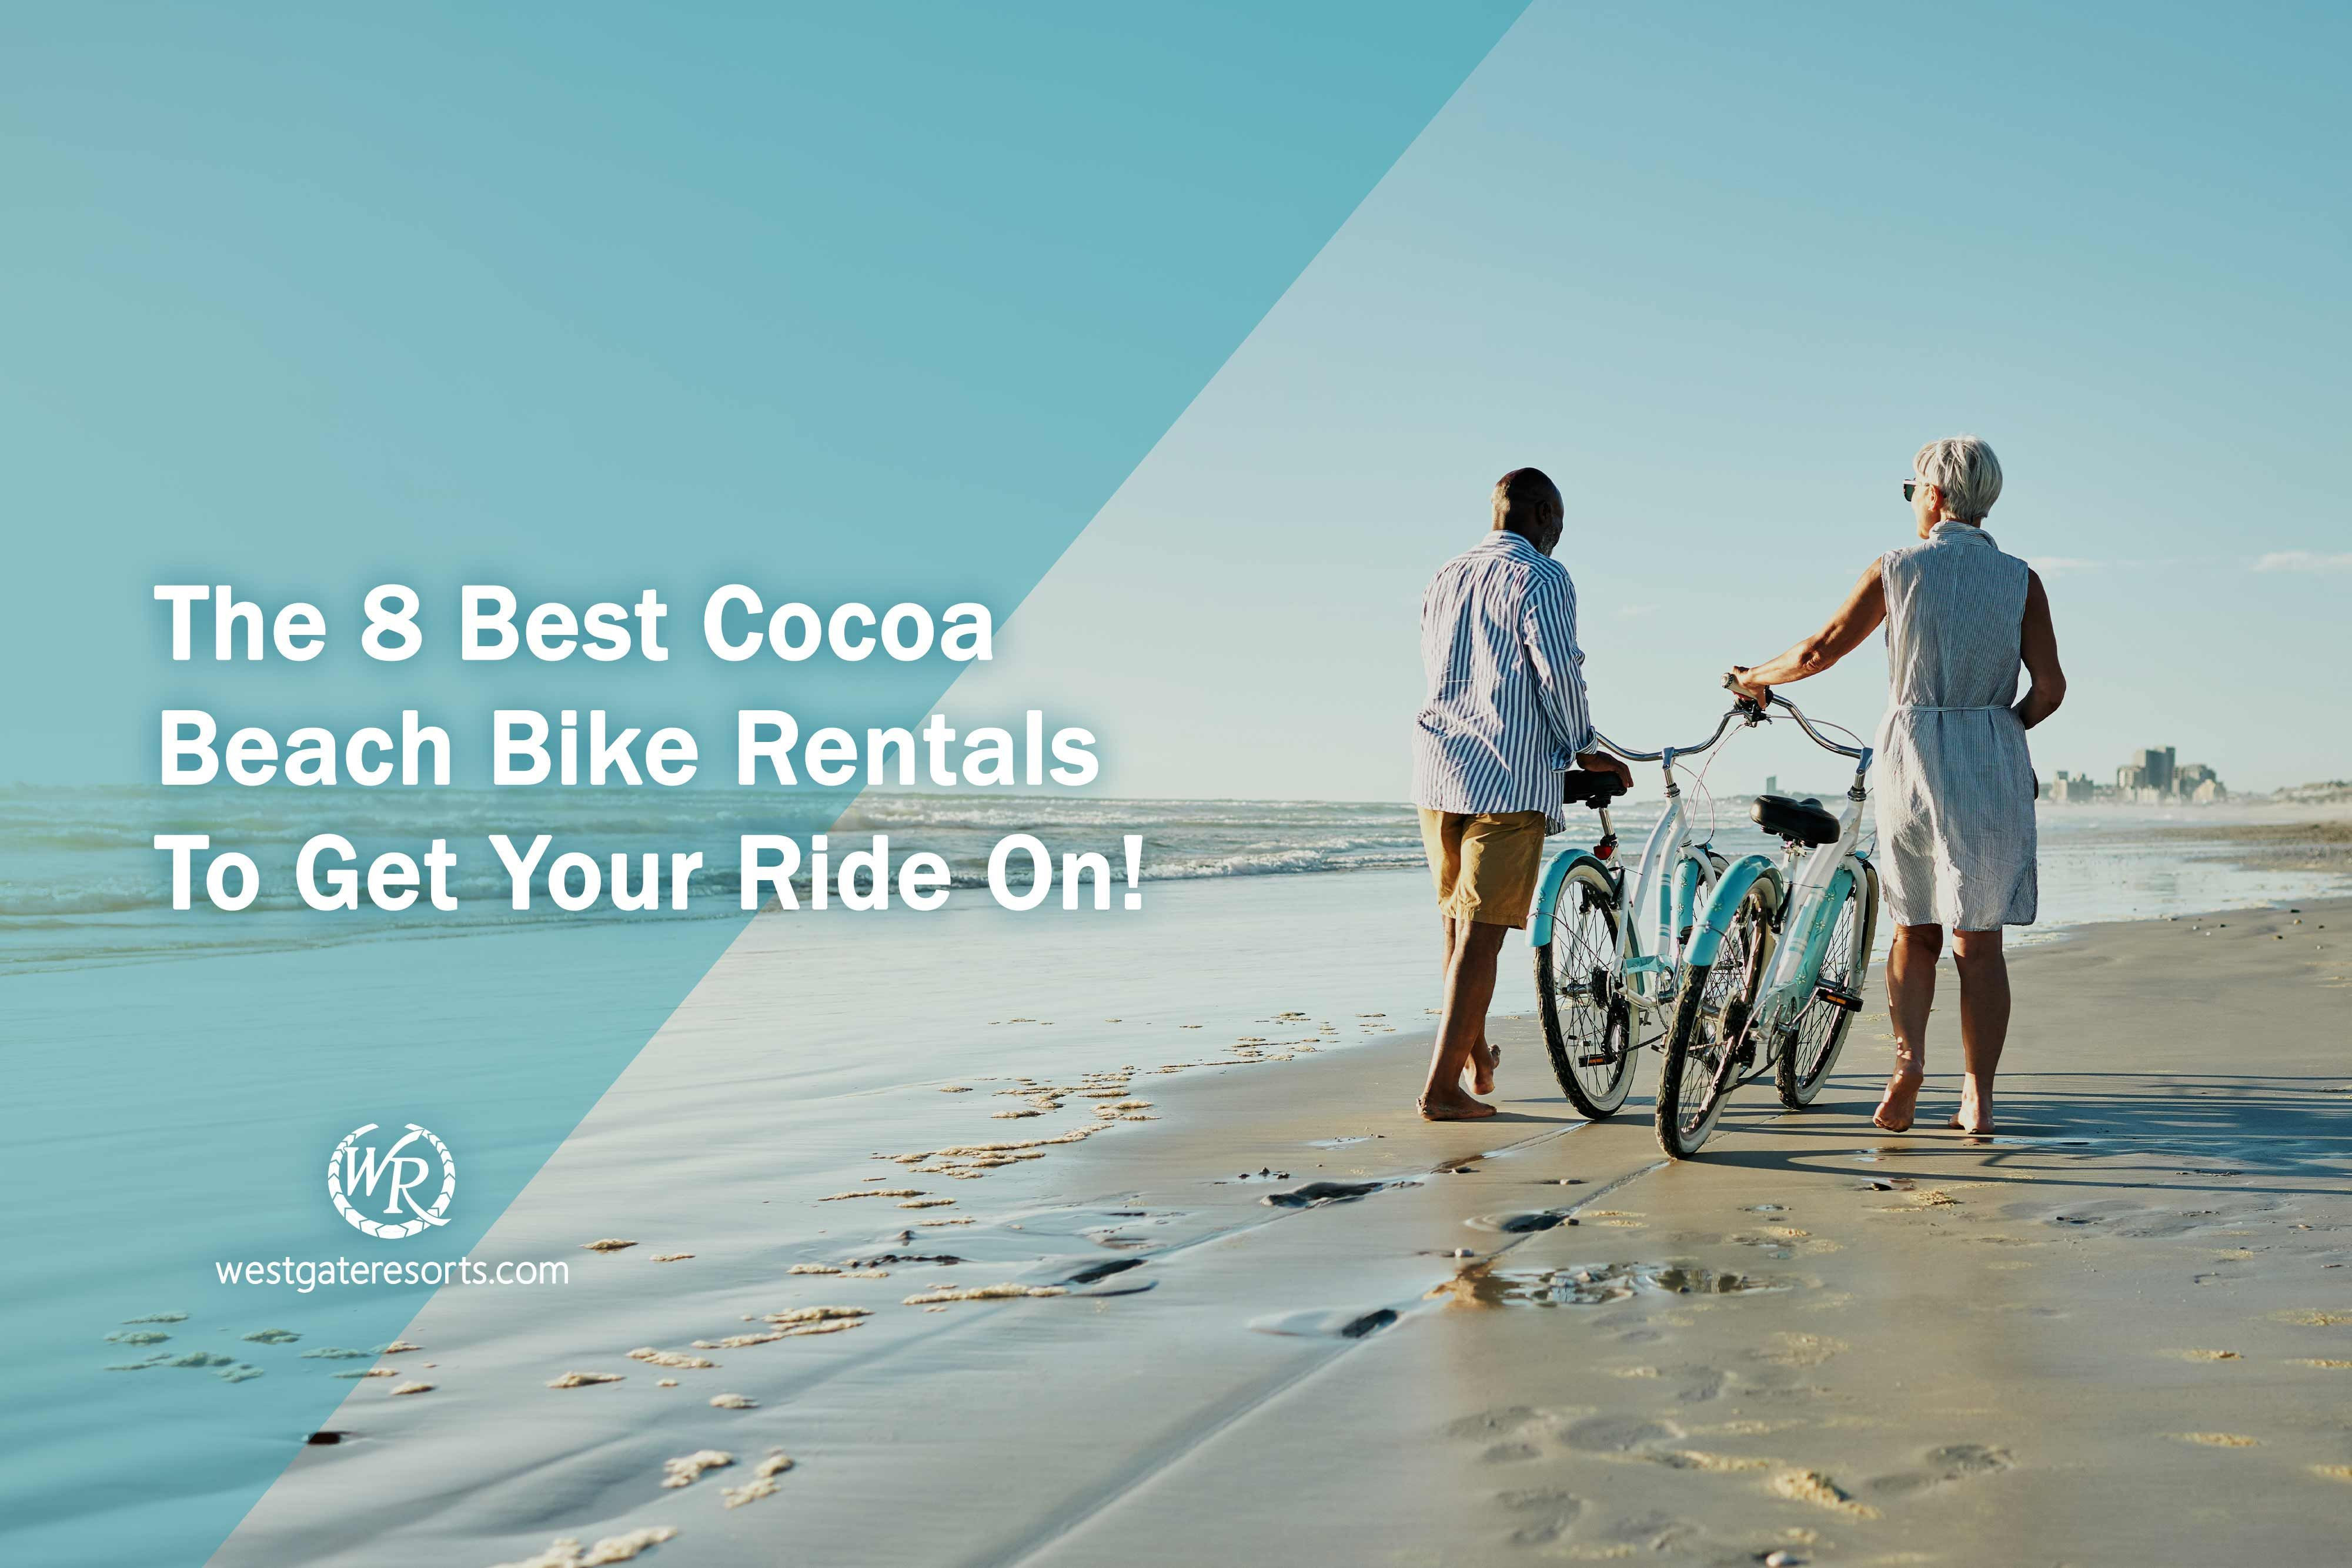 The 8 Best Cocoa Beach Bike Rentals To Get Your Ride On!